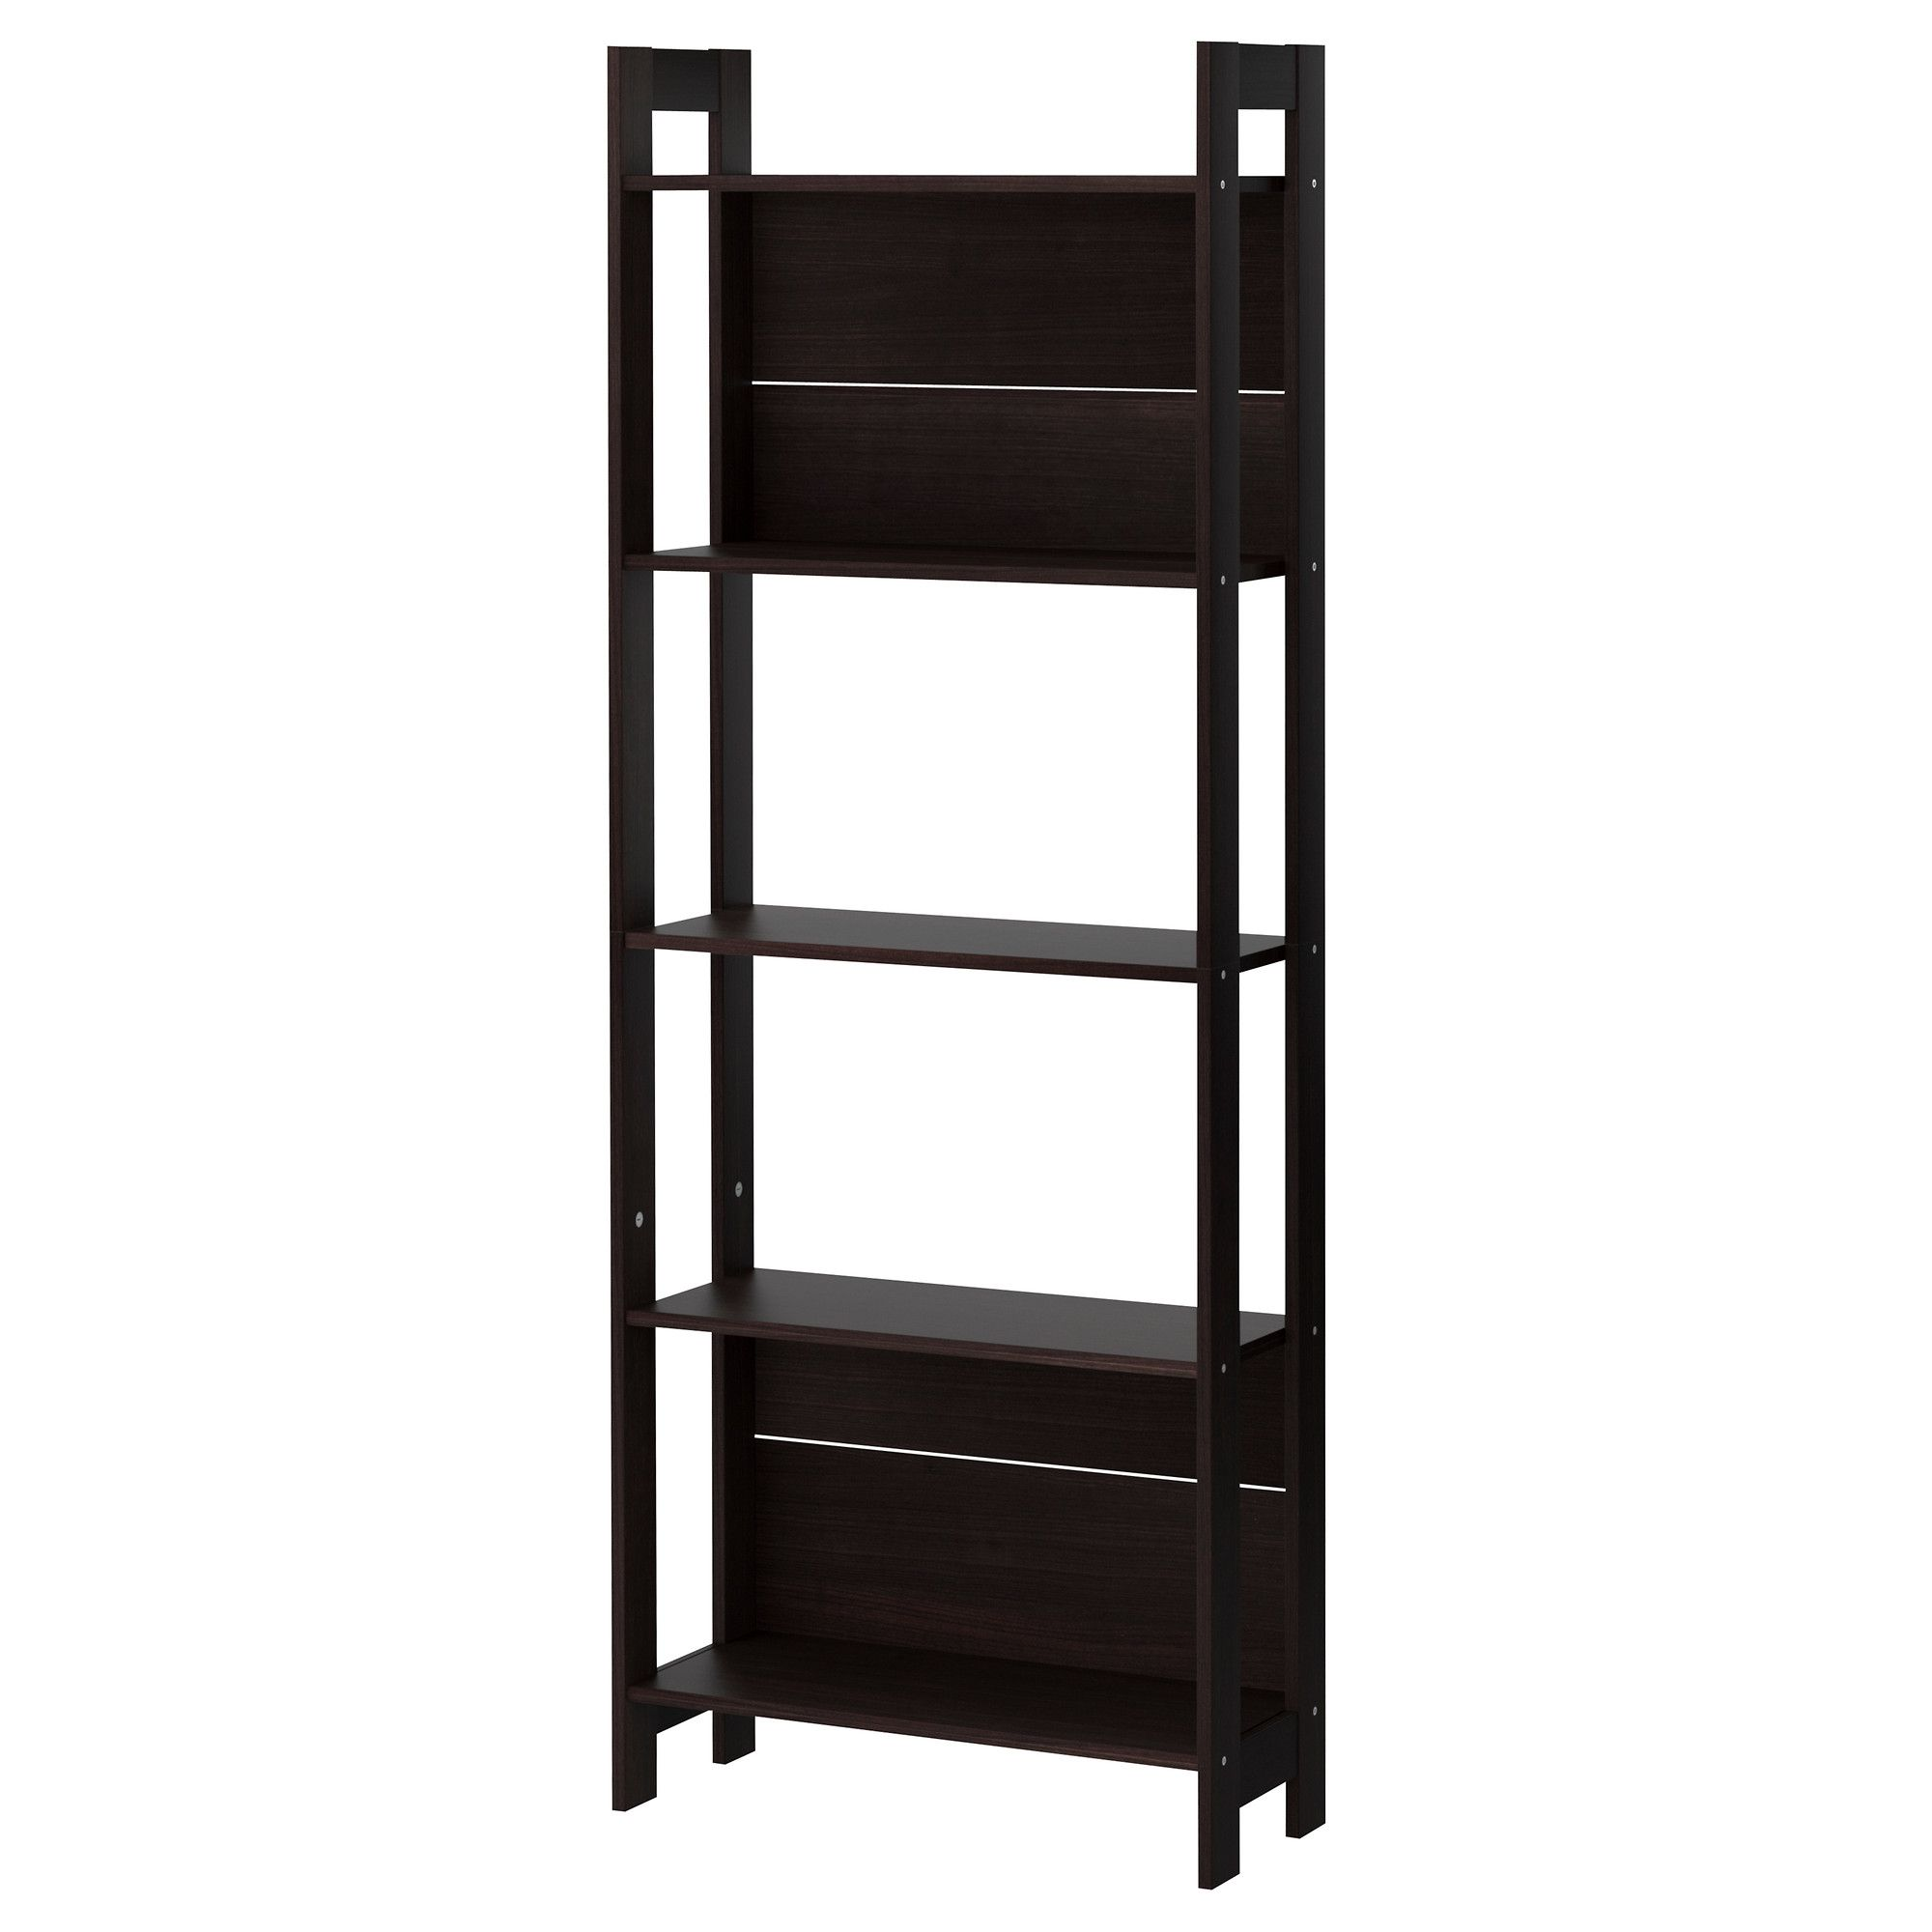 laiva bookcase black brown shelves apartments and living rooms